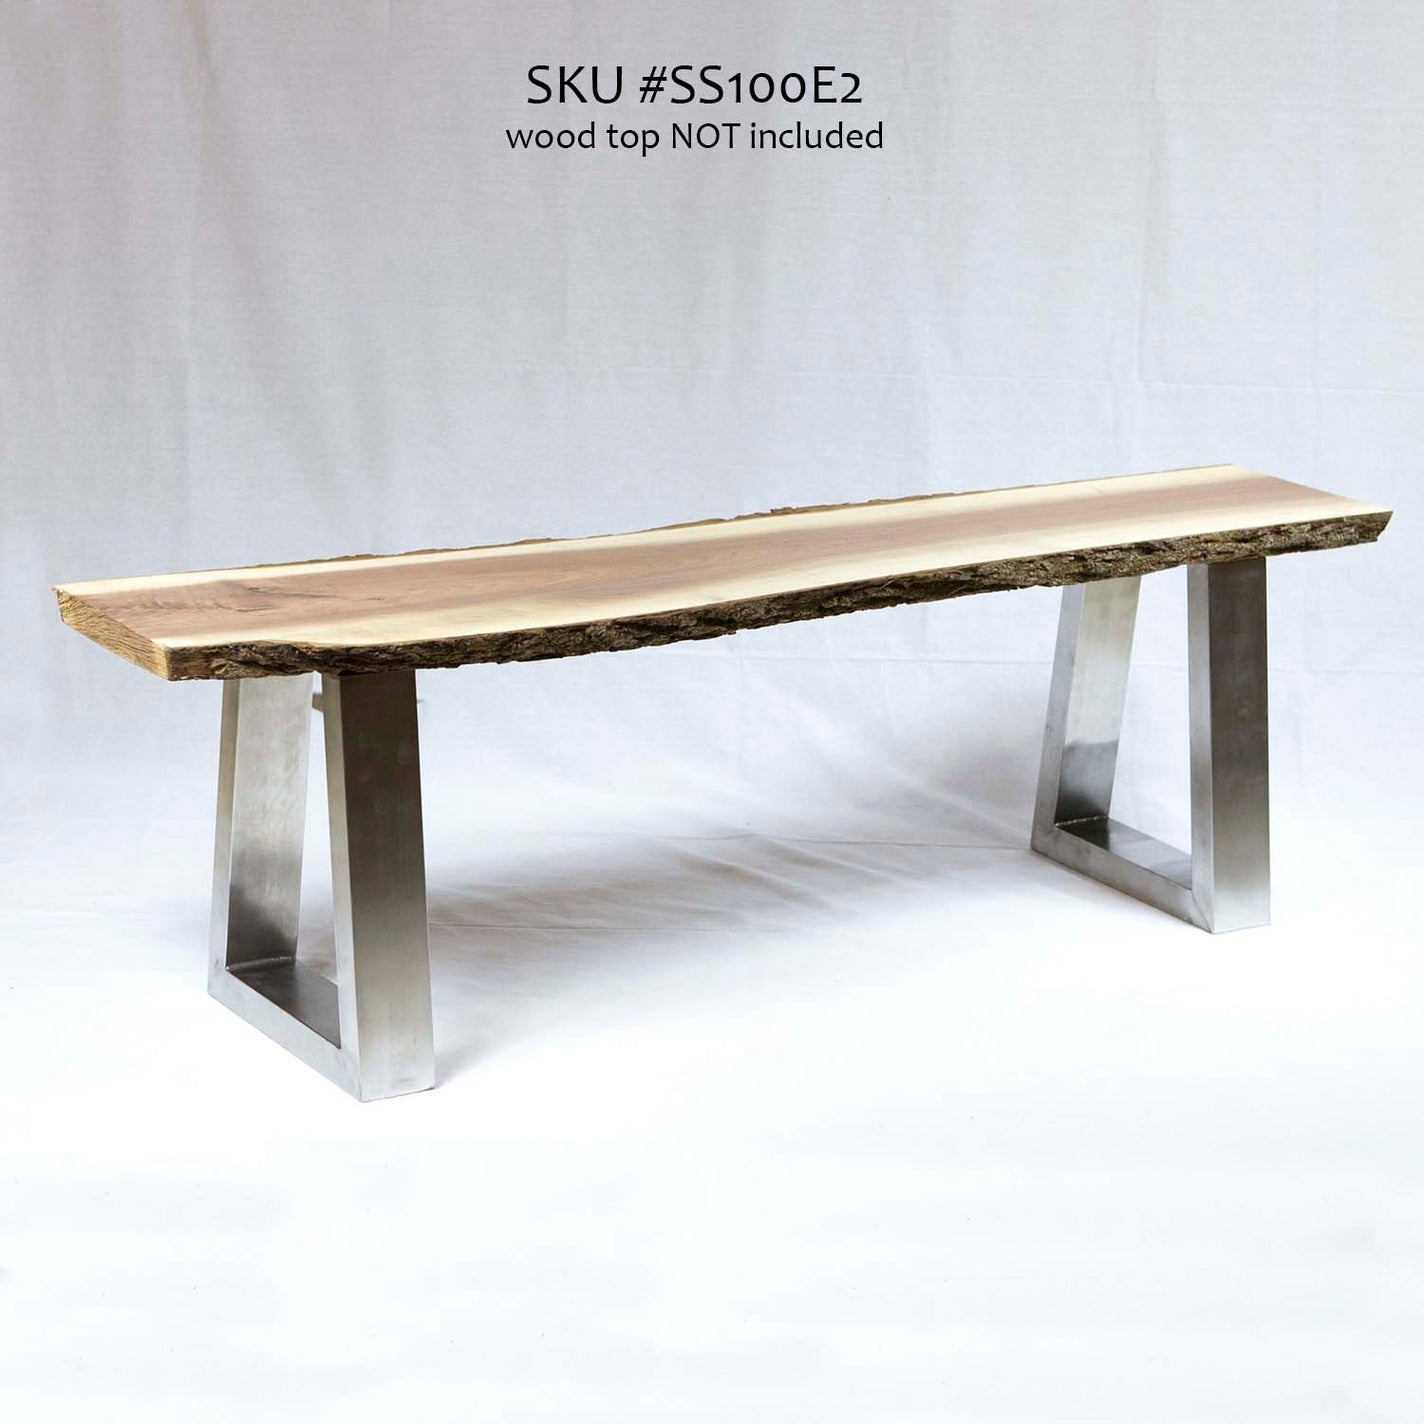 SS100E2 Stainless Steel Bench U Legs (narrow Coffee Table